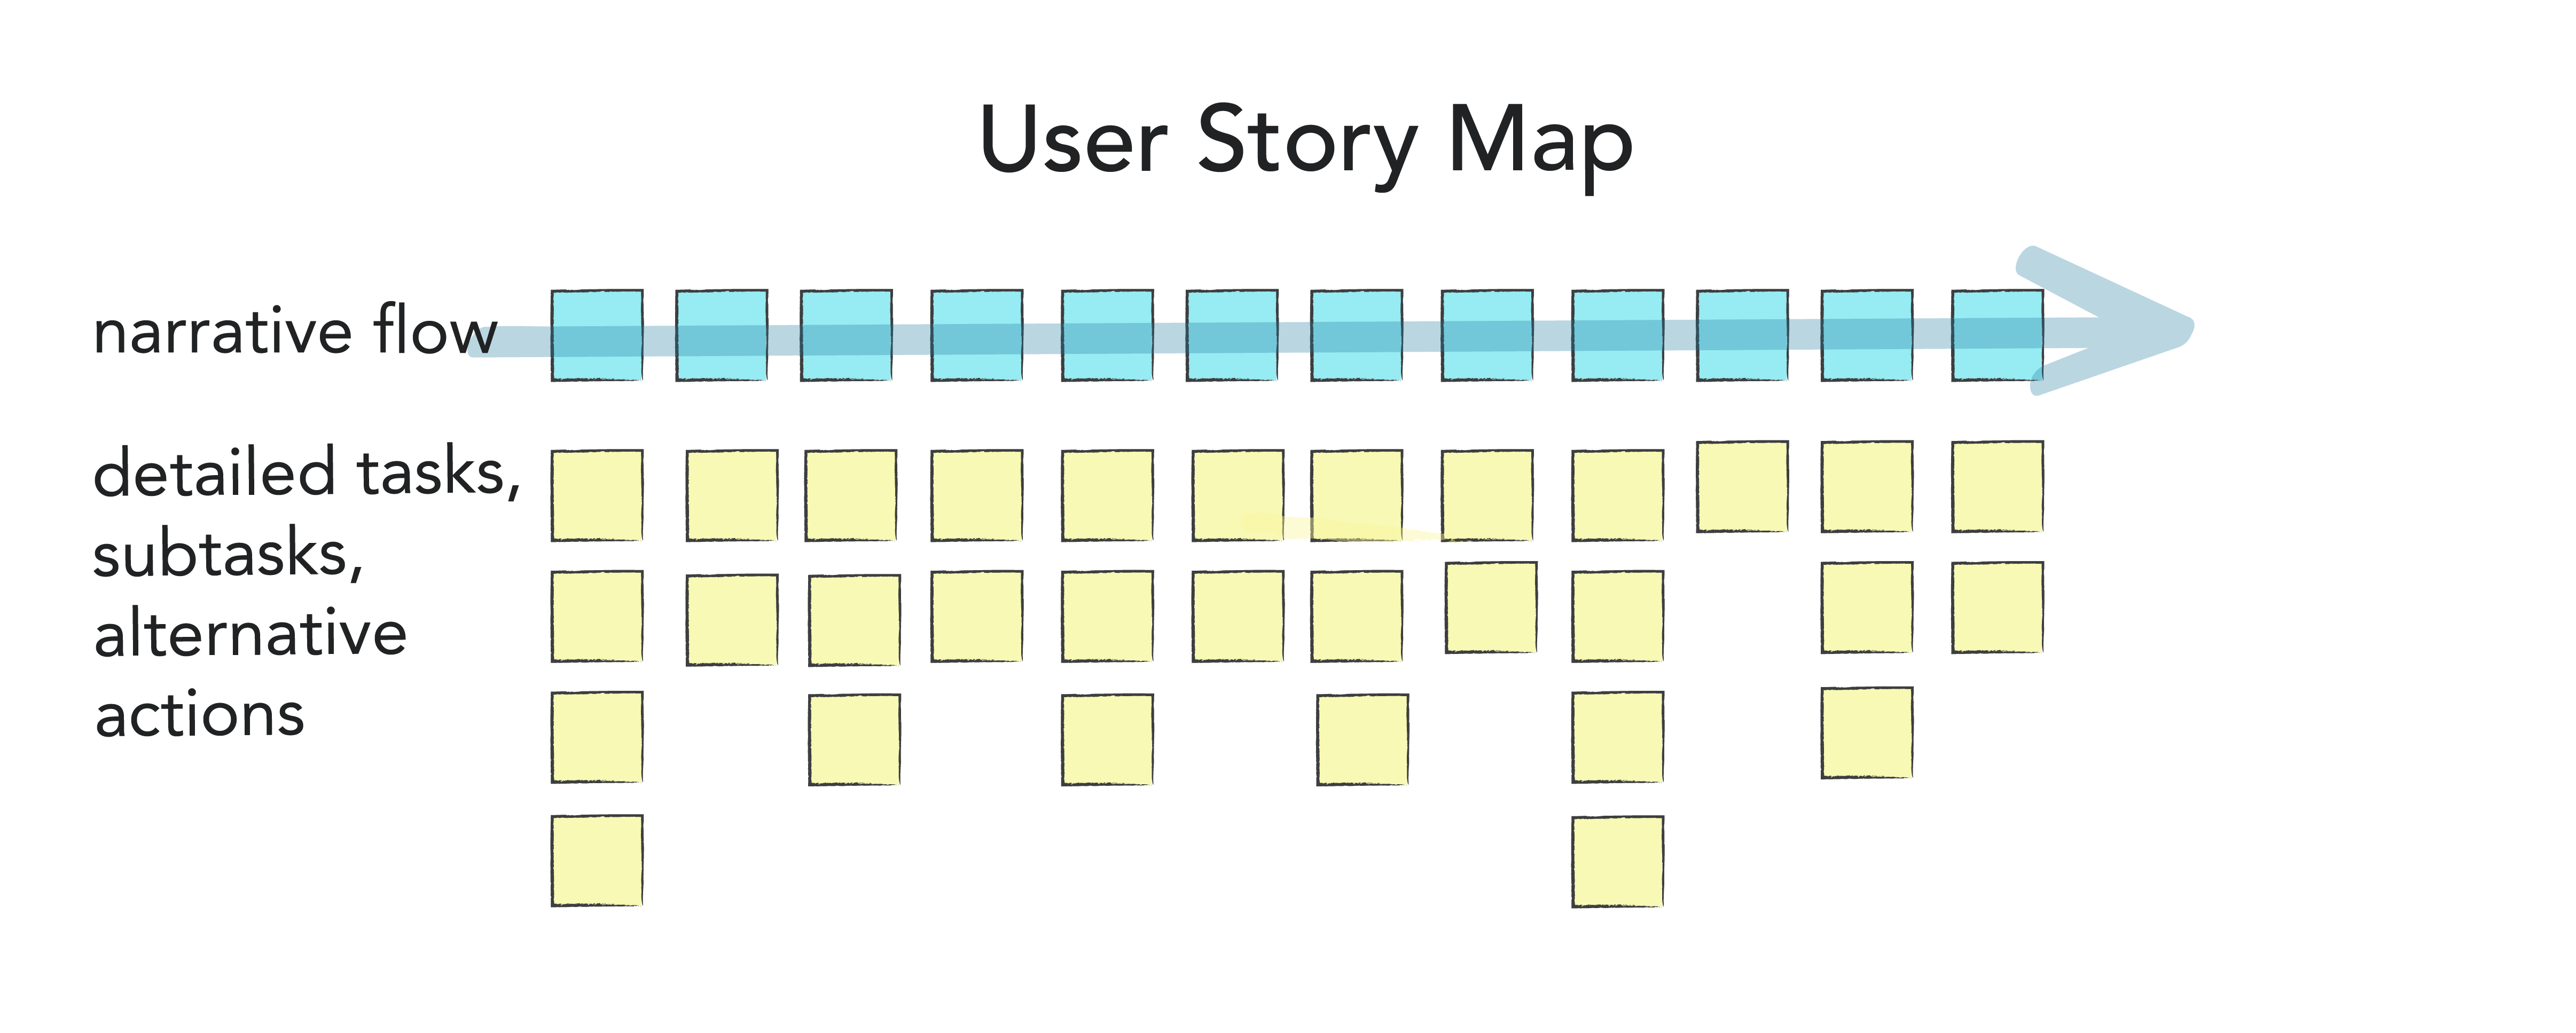 A user story map indicating subtasks under the main tasks.